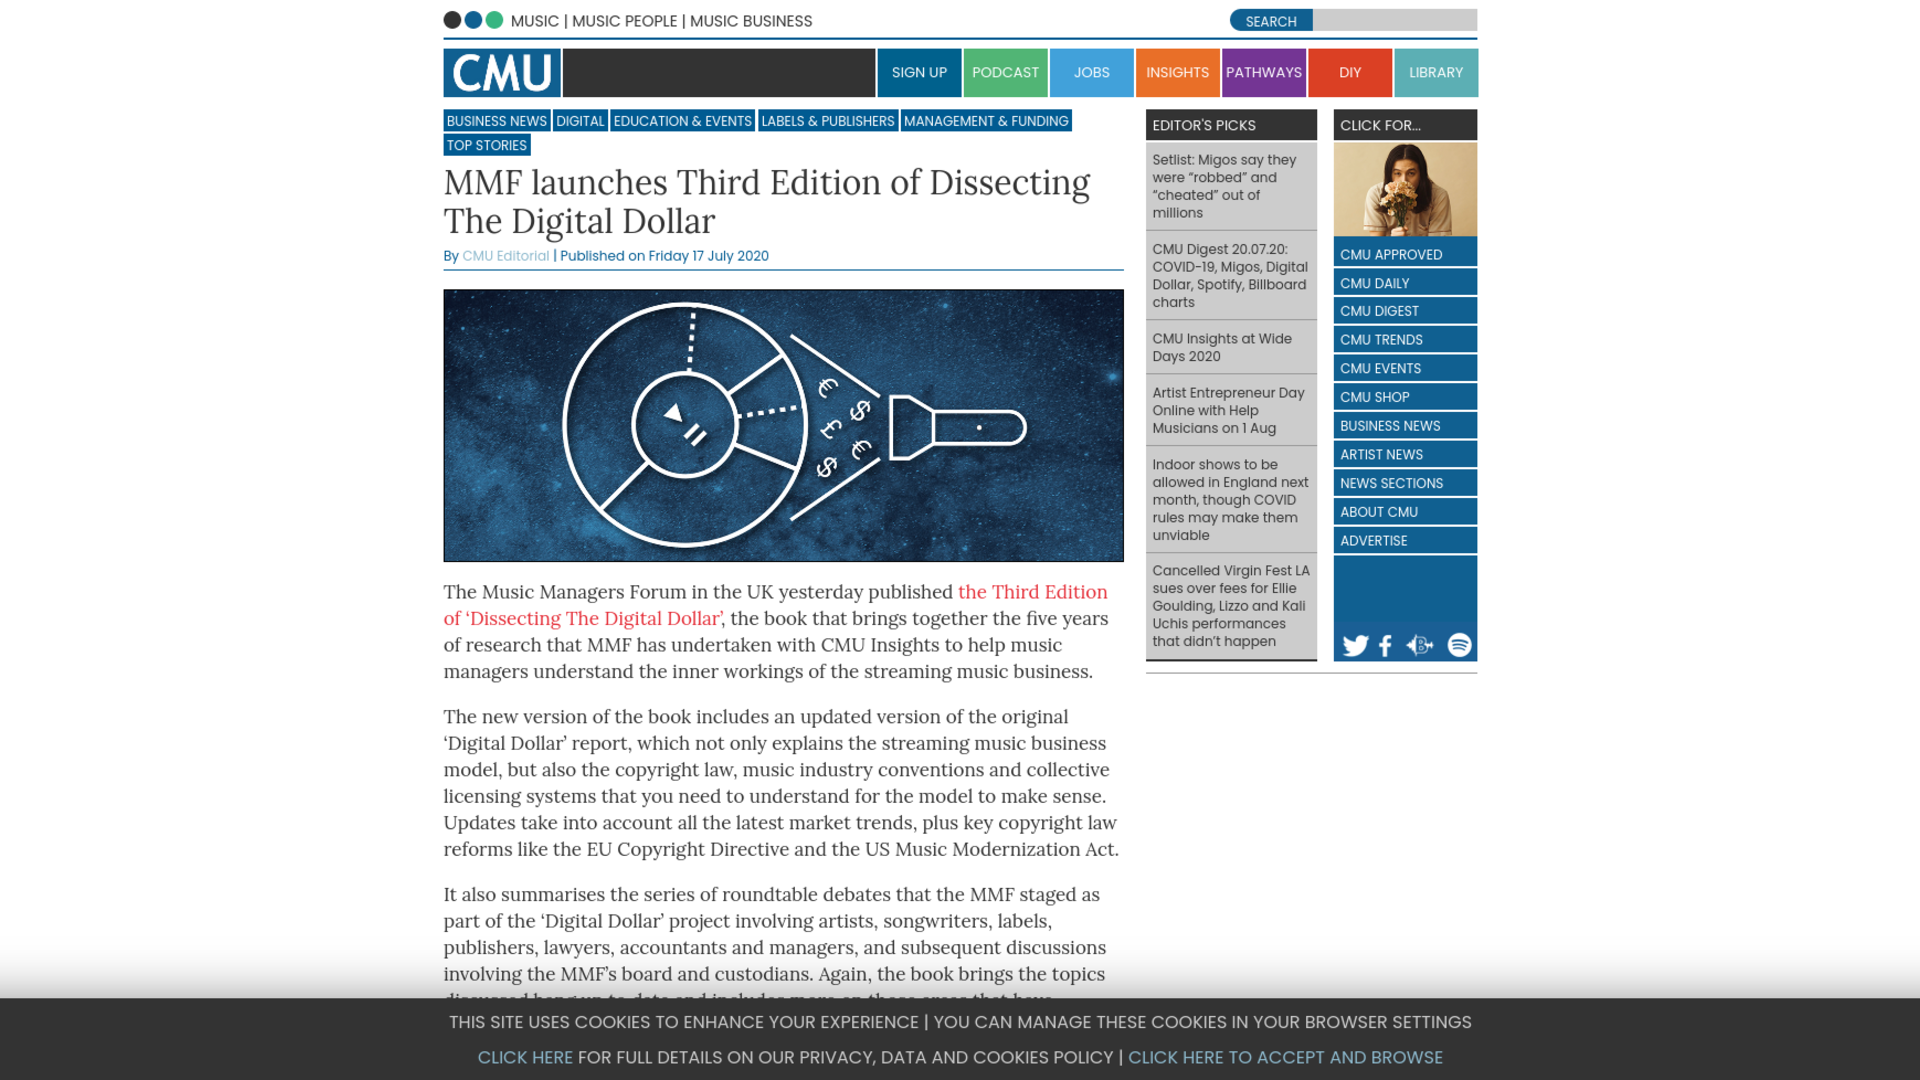 Fairness Rocks News MMF launches Third Edition of Dissecting The Digital Dollar